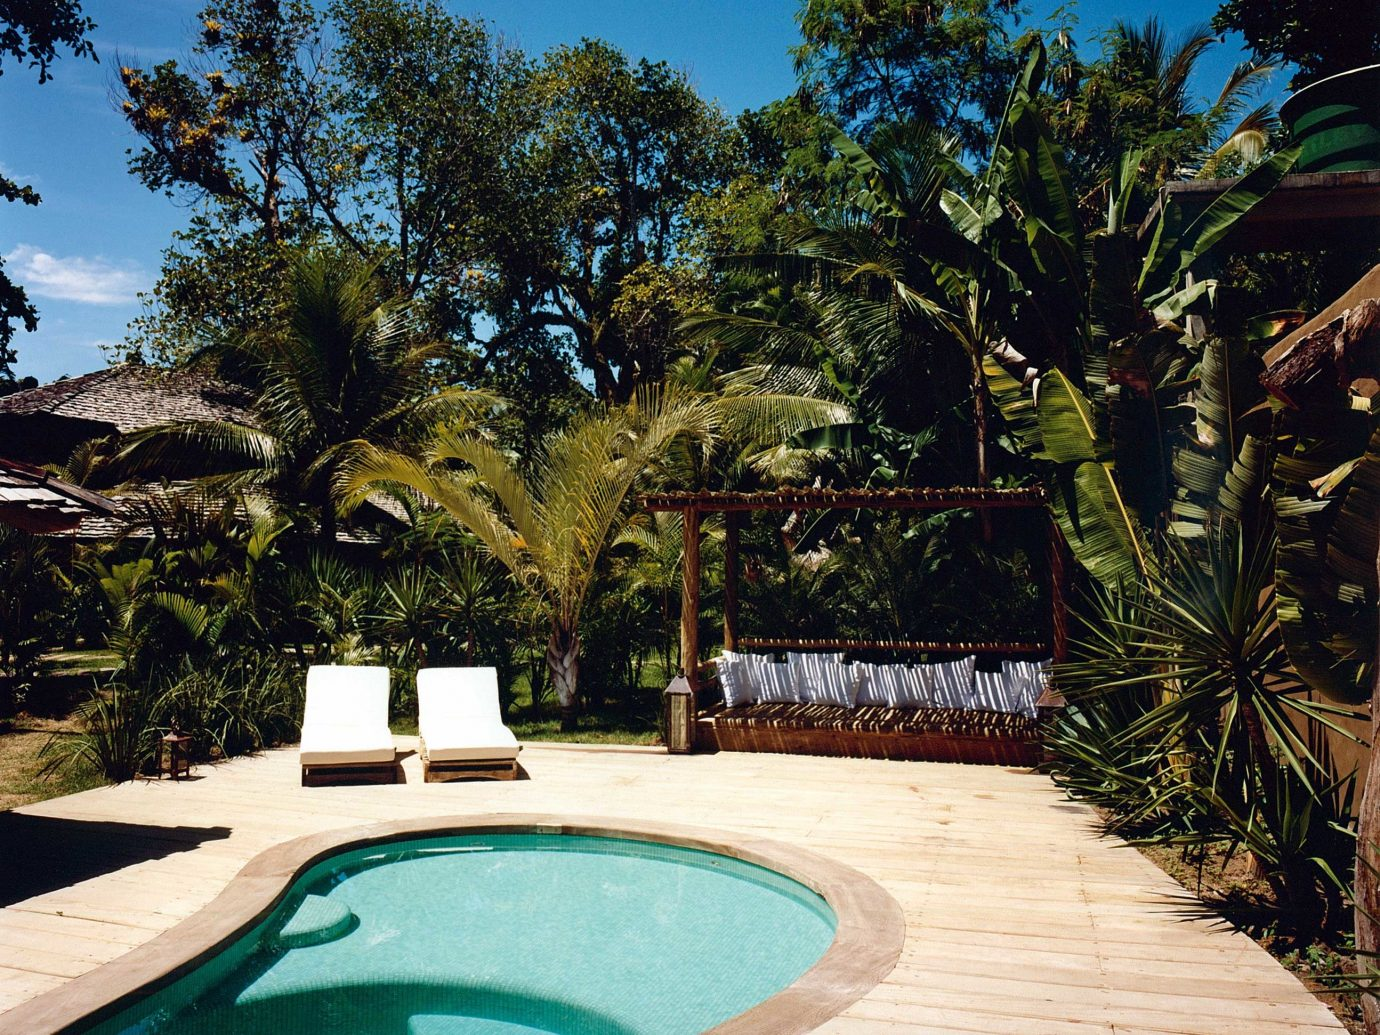 Pool at Uxua Casa Hotel & Spa